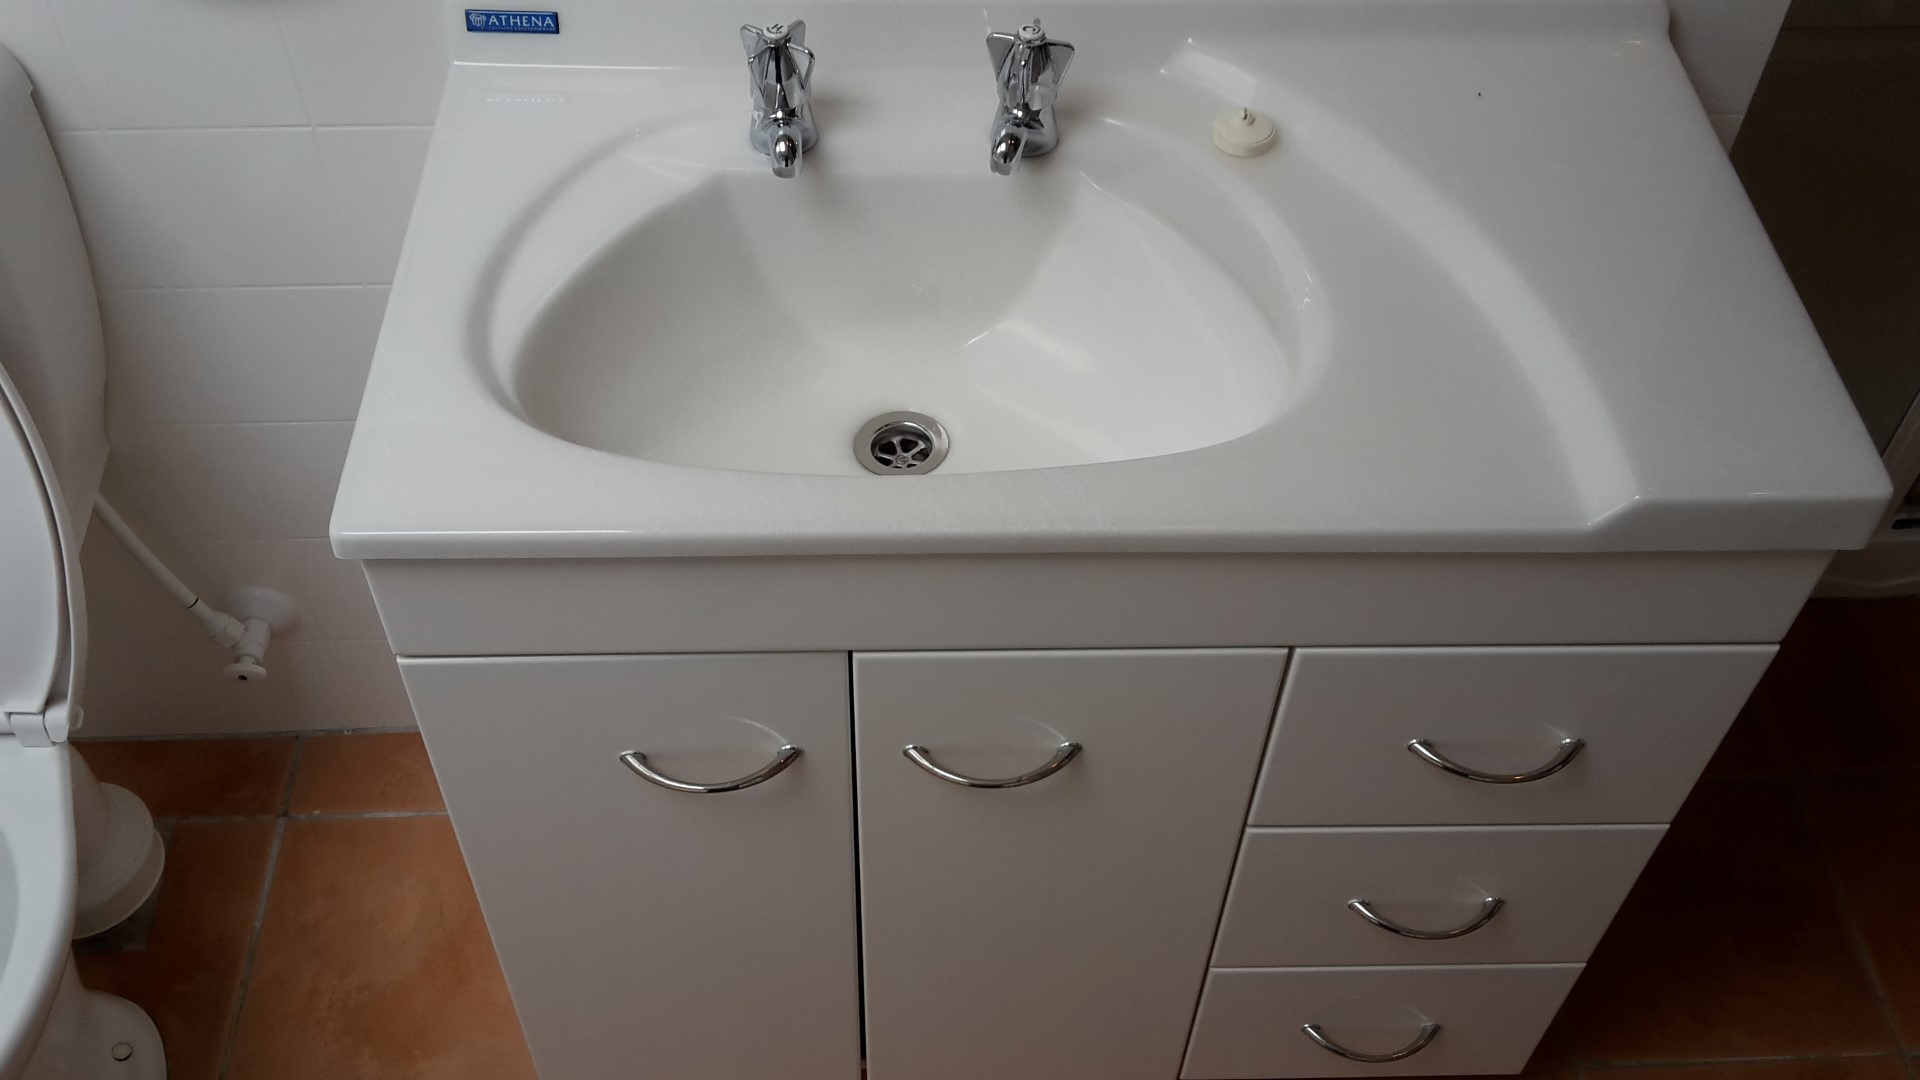 Basin Sink Cleaning